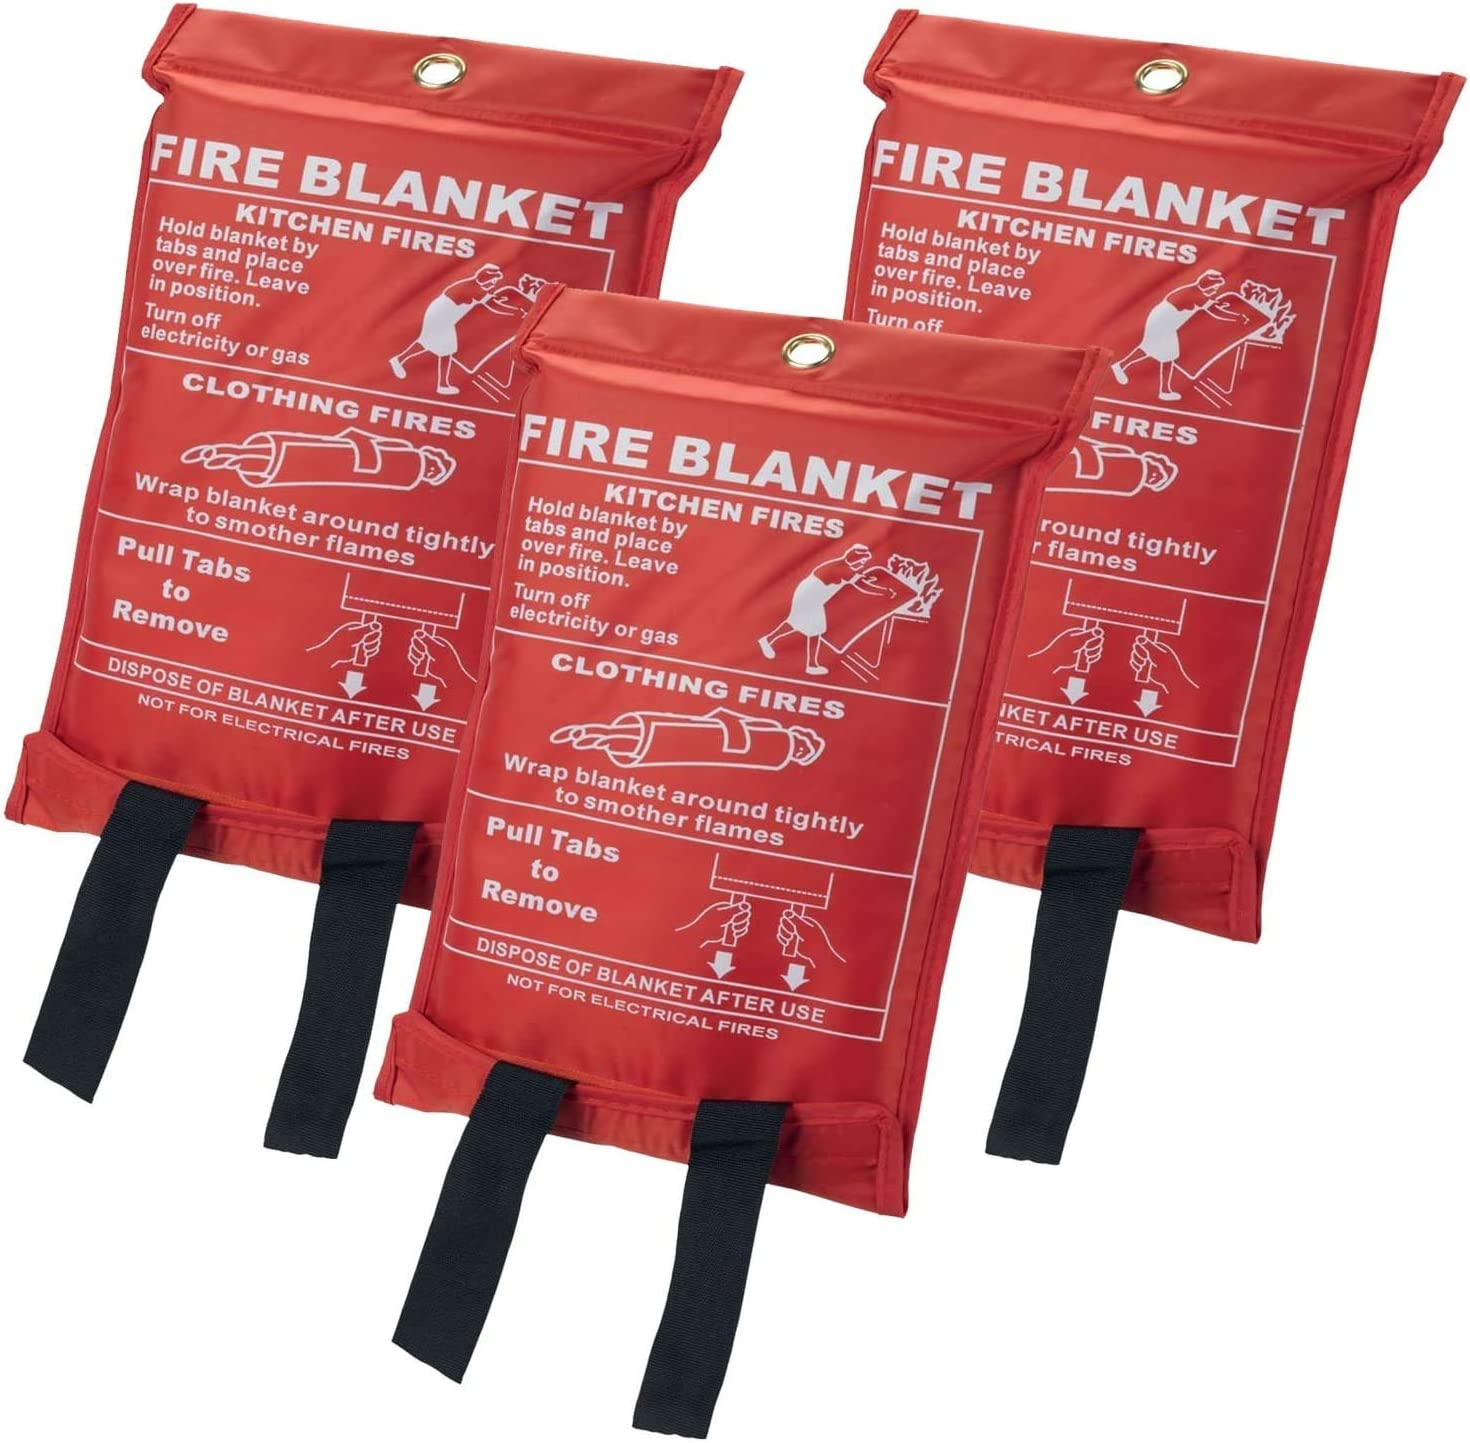 Easy To Use and To Deploy In Emergency Emergency Blanket Suppression Blanket Flame Retardant Ideal for Home//Office//Kitchen 1 1m x 1m Quick Release Safety Fire Blanket